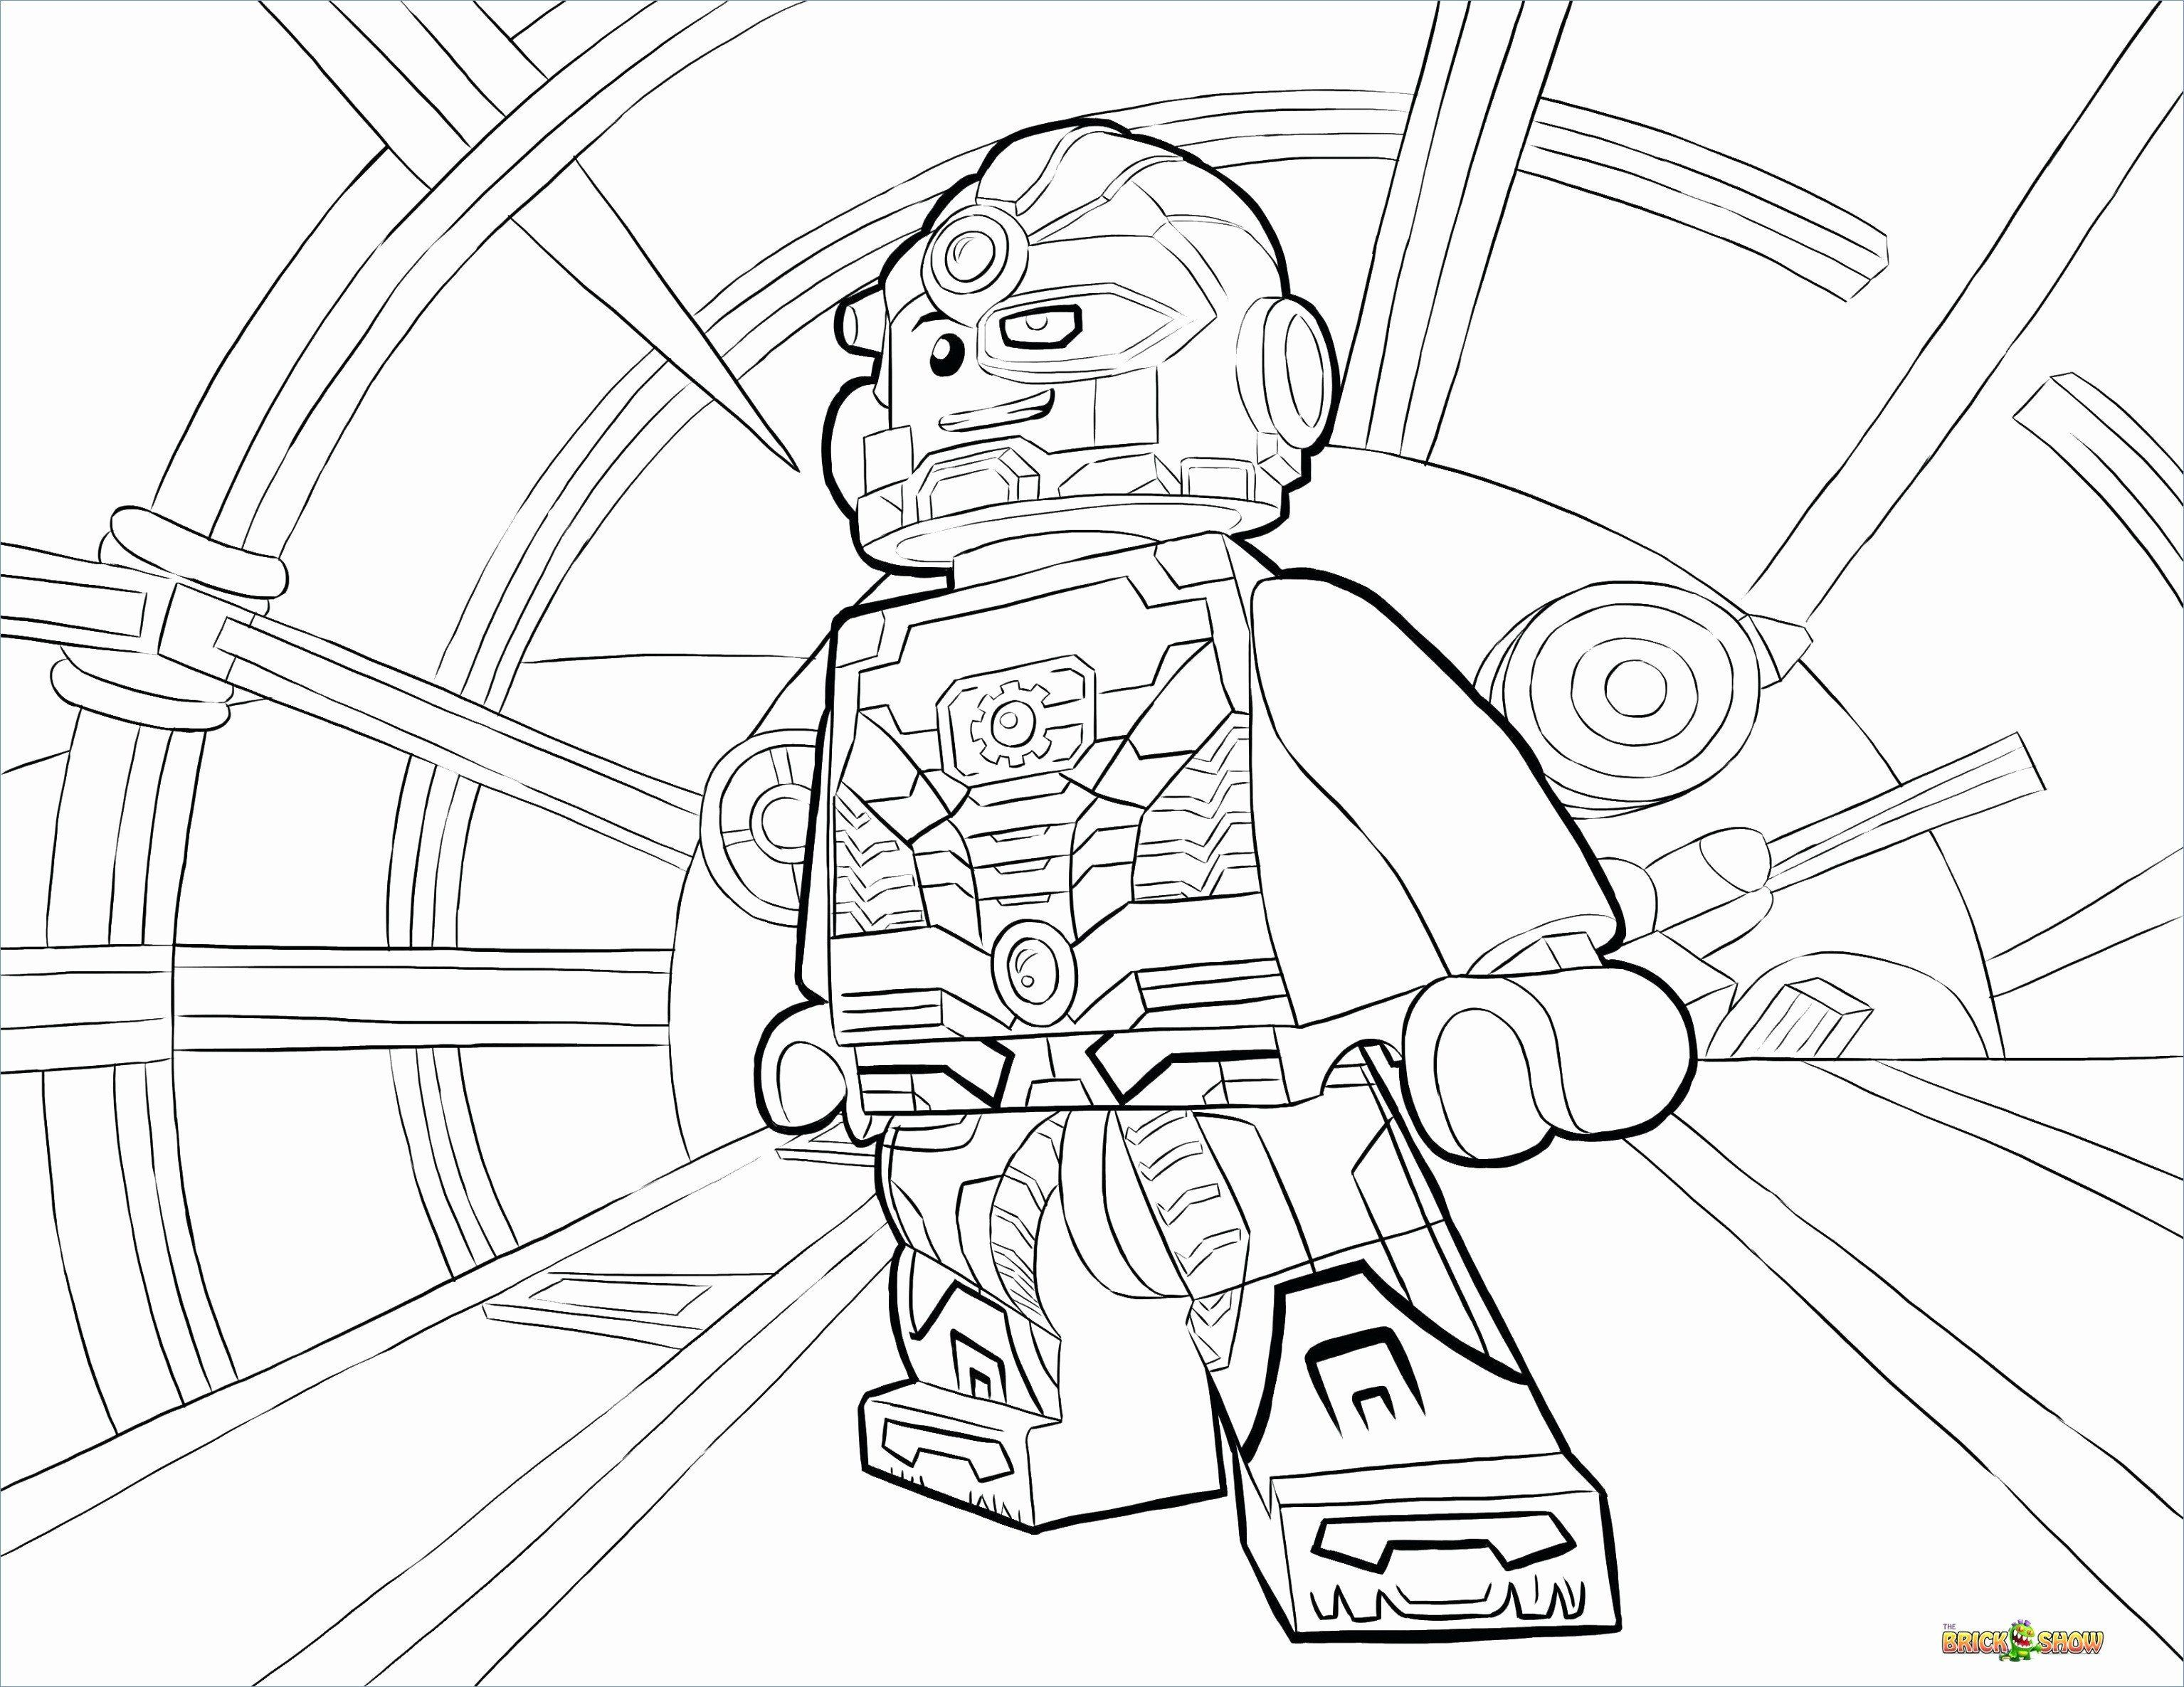 Lego Superhero Coloring Pages Inspirational Lego Coloring Pages In 2020 Superhero Coloring Superhero Coloring Pages Batman Coloring Pages